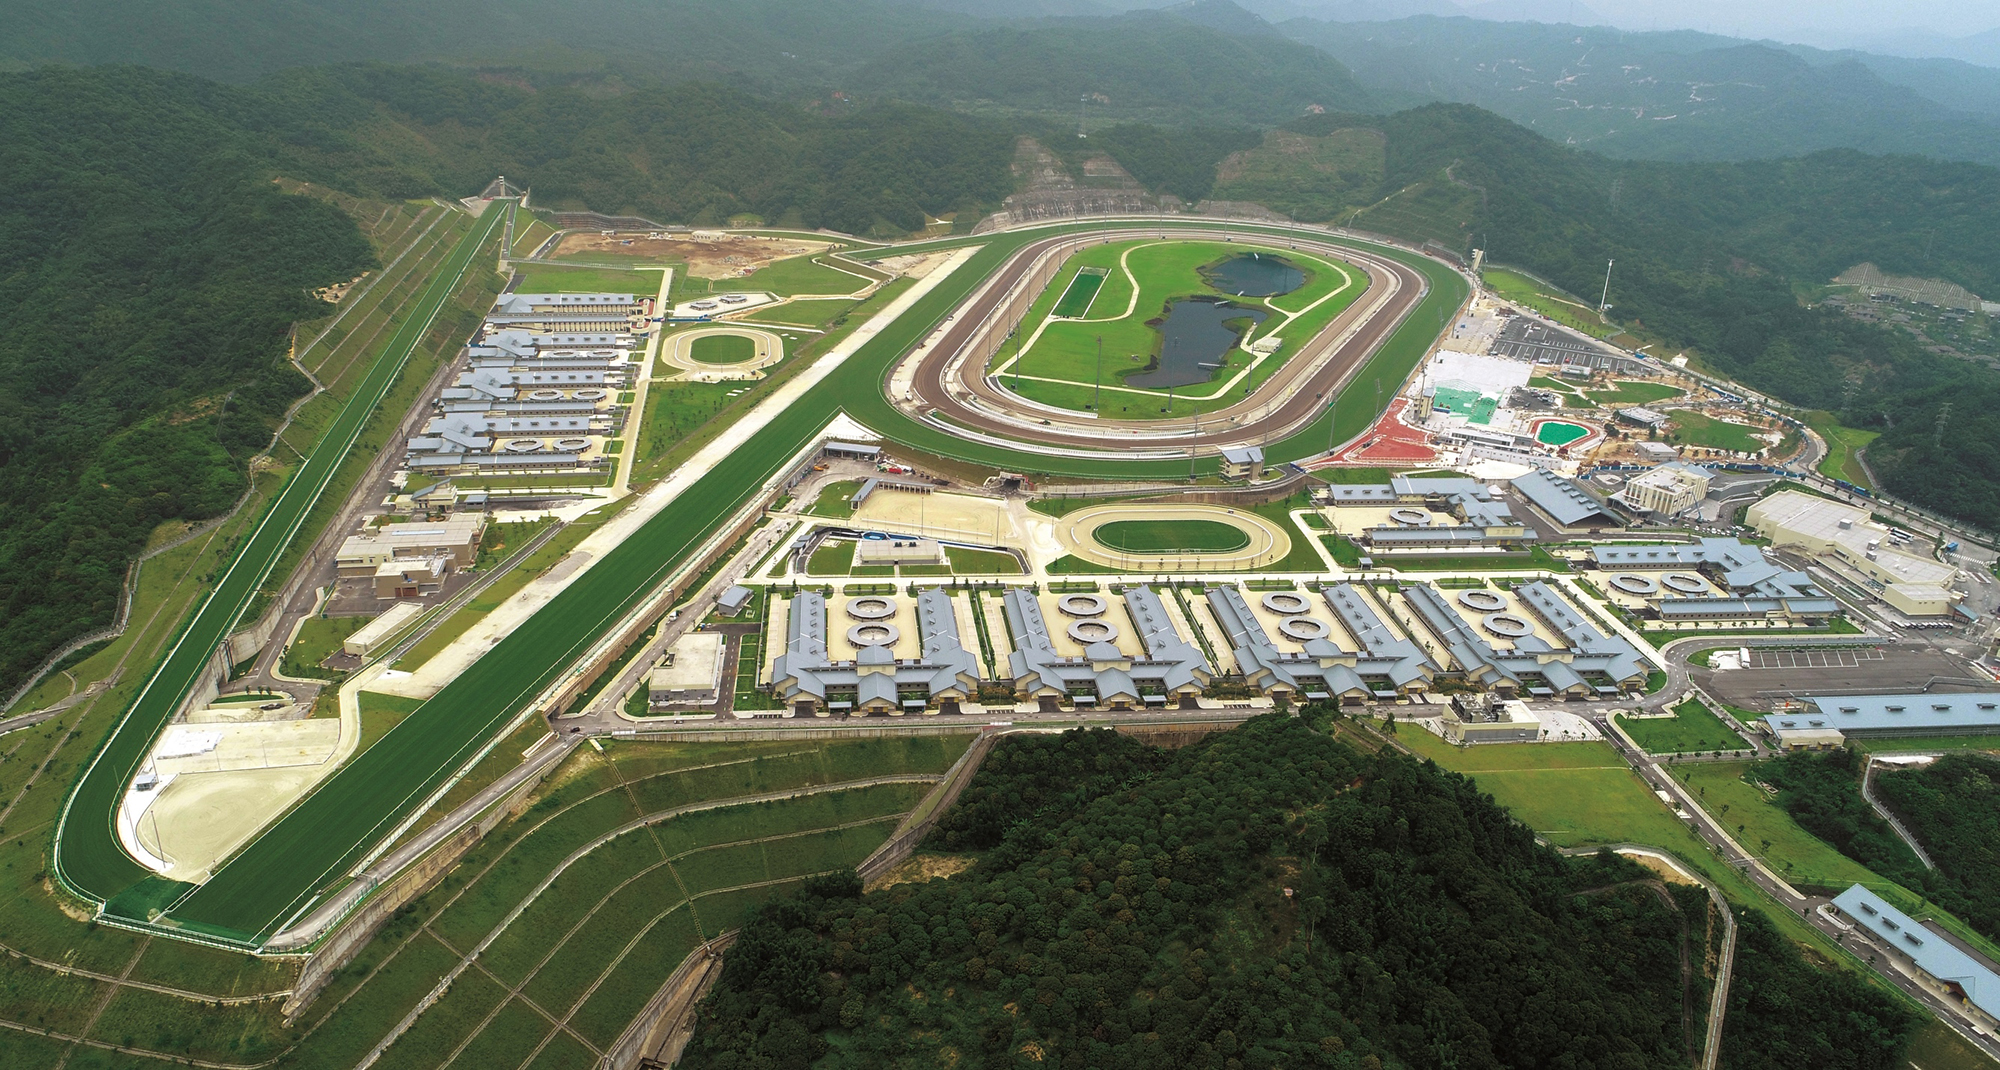 INTERNATIONAL - Conghua, le pari sur l'avenir du Hong Kong Jockey Club